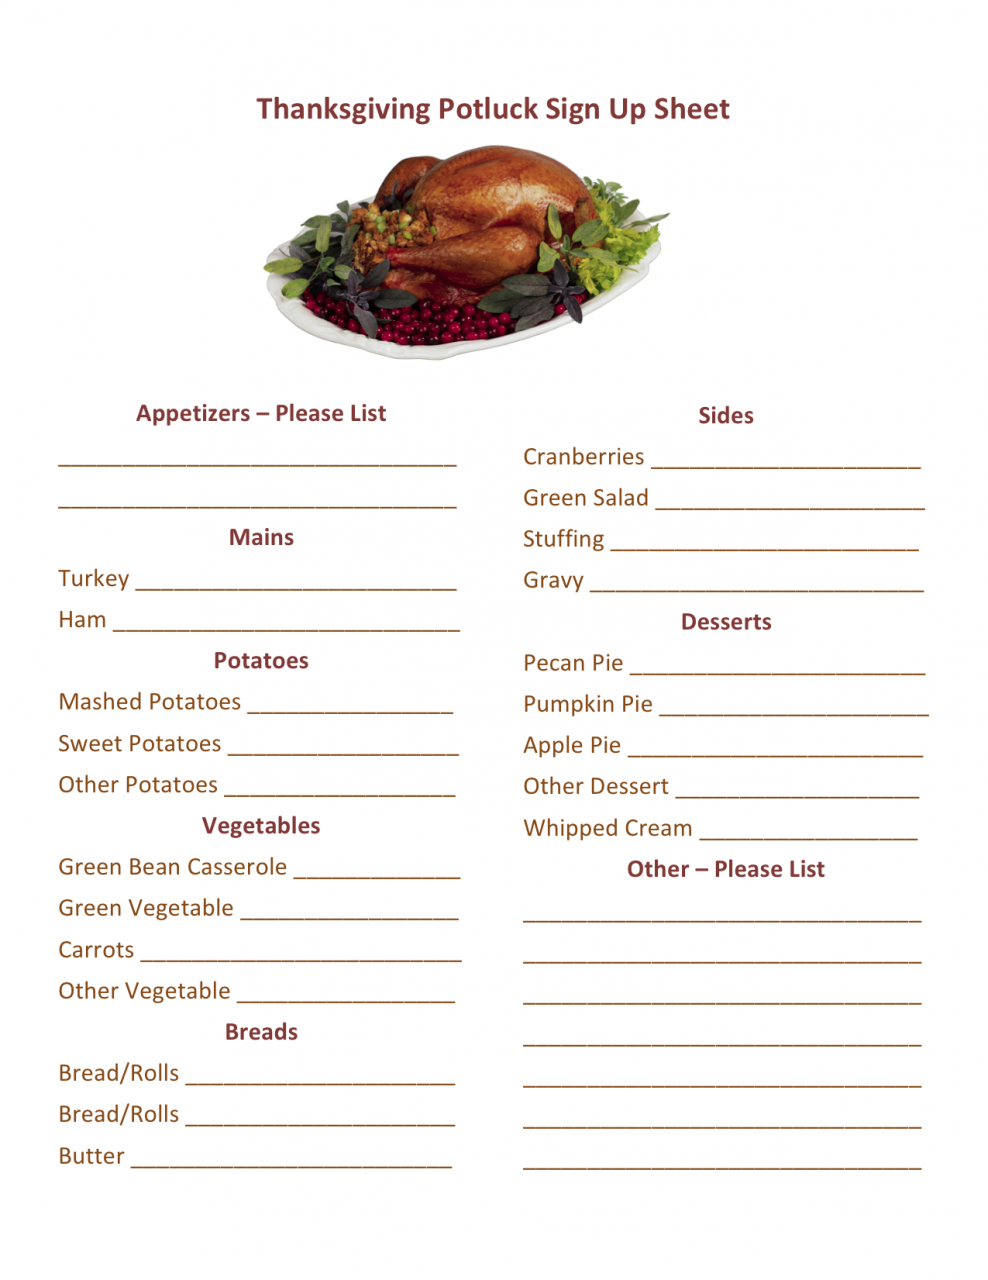 Thanksgiving Potluck Sign Up Printable | HMH Designs